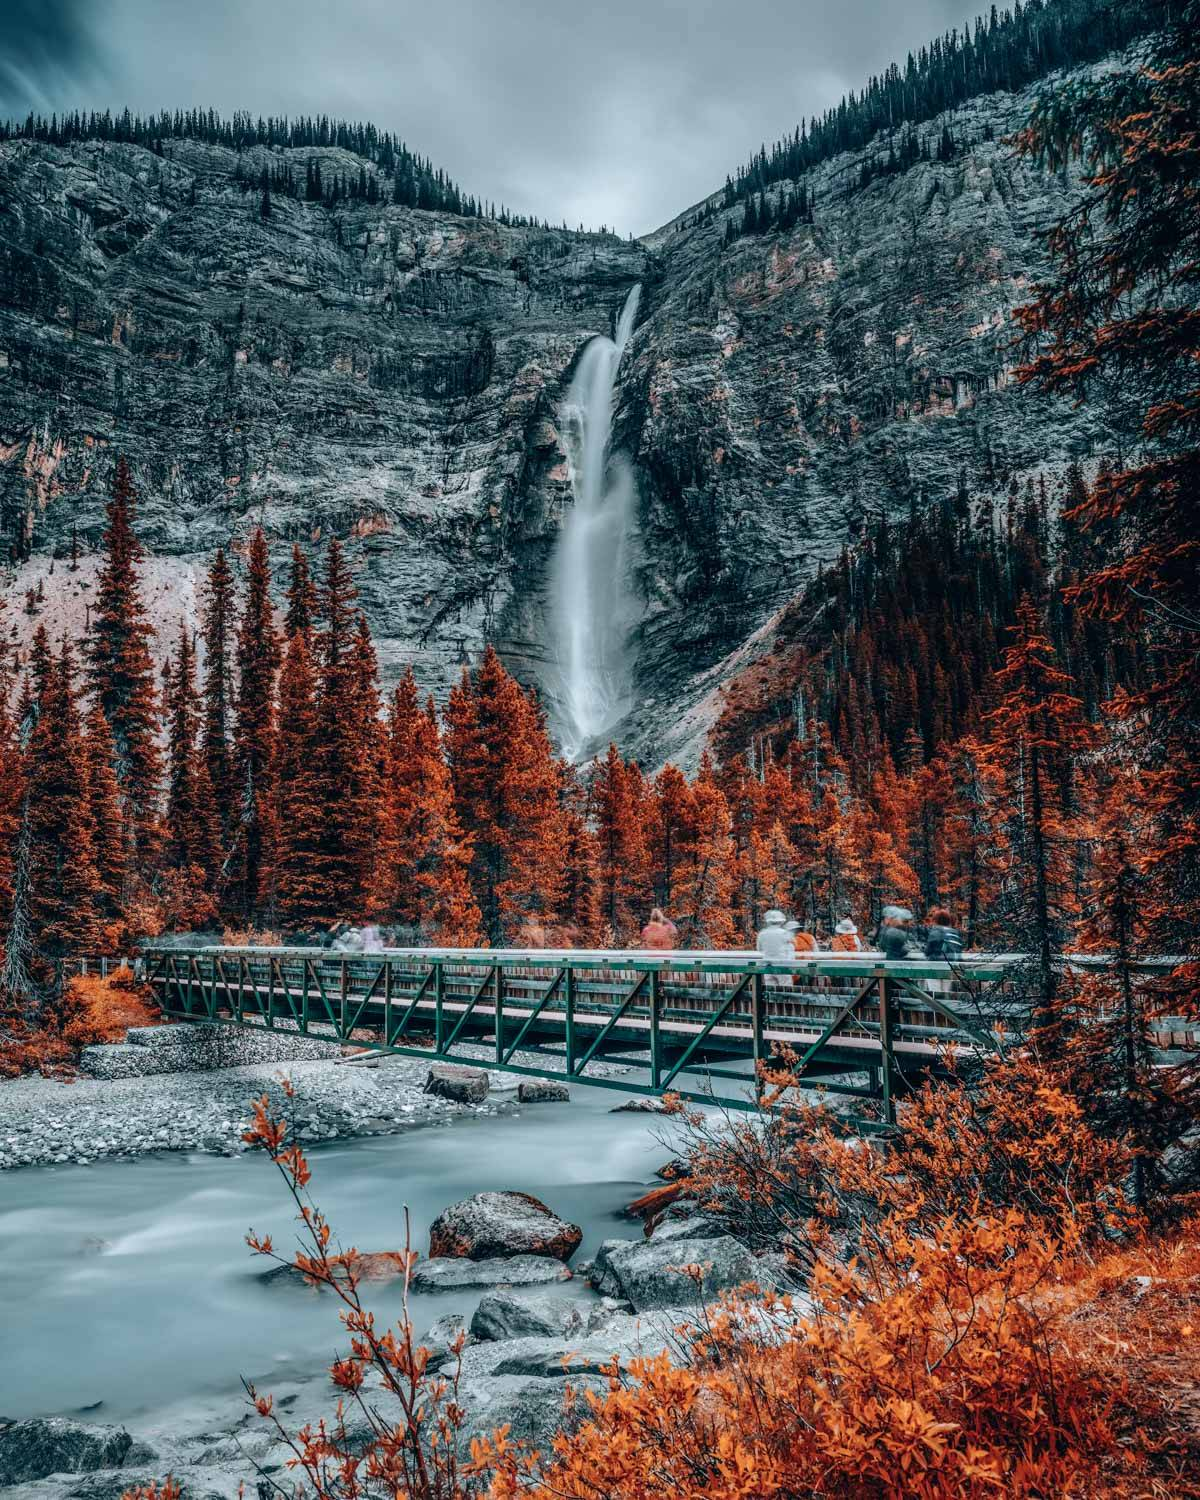 Looking for the best provincial parks in British Colombia or Canada? Fret not, because we have the ultimate of all the best parts including highlights, how to get there, and where to stay and where the closest airport is. Our favorites are Yoho and Pacific Rim